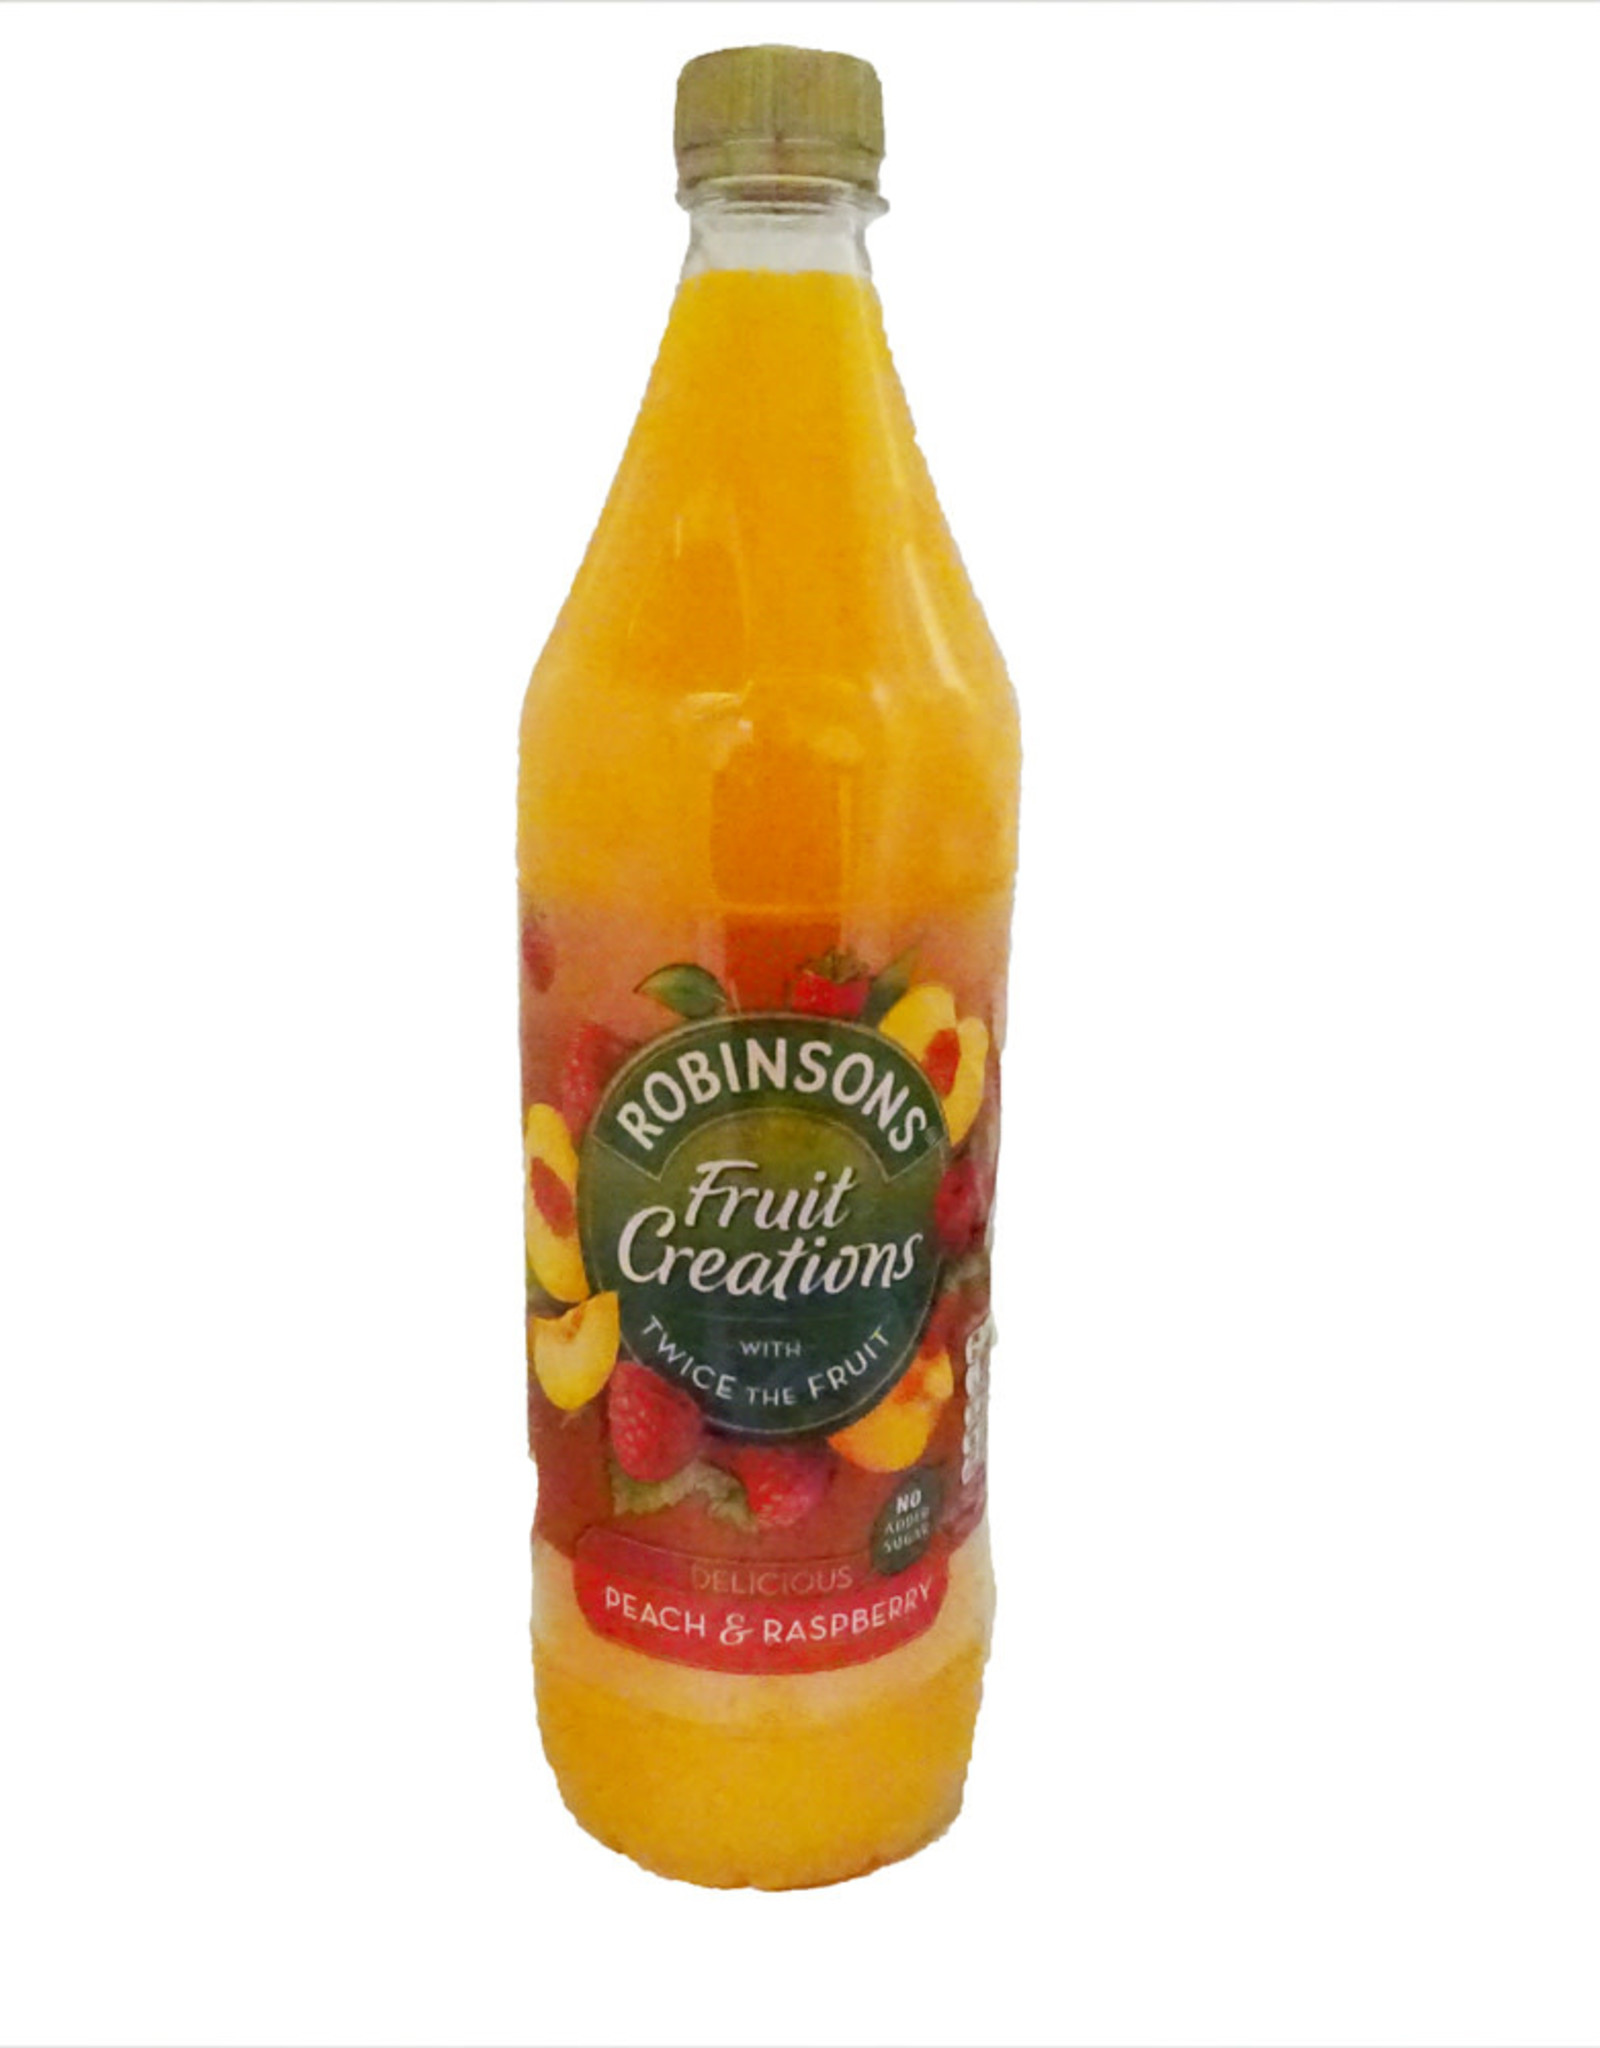 Robinson's Robinsons Fruit Creations Peach & Raspberry 1L